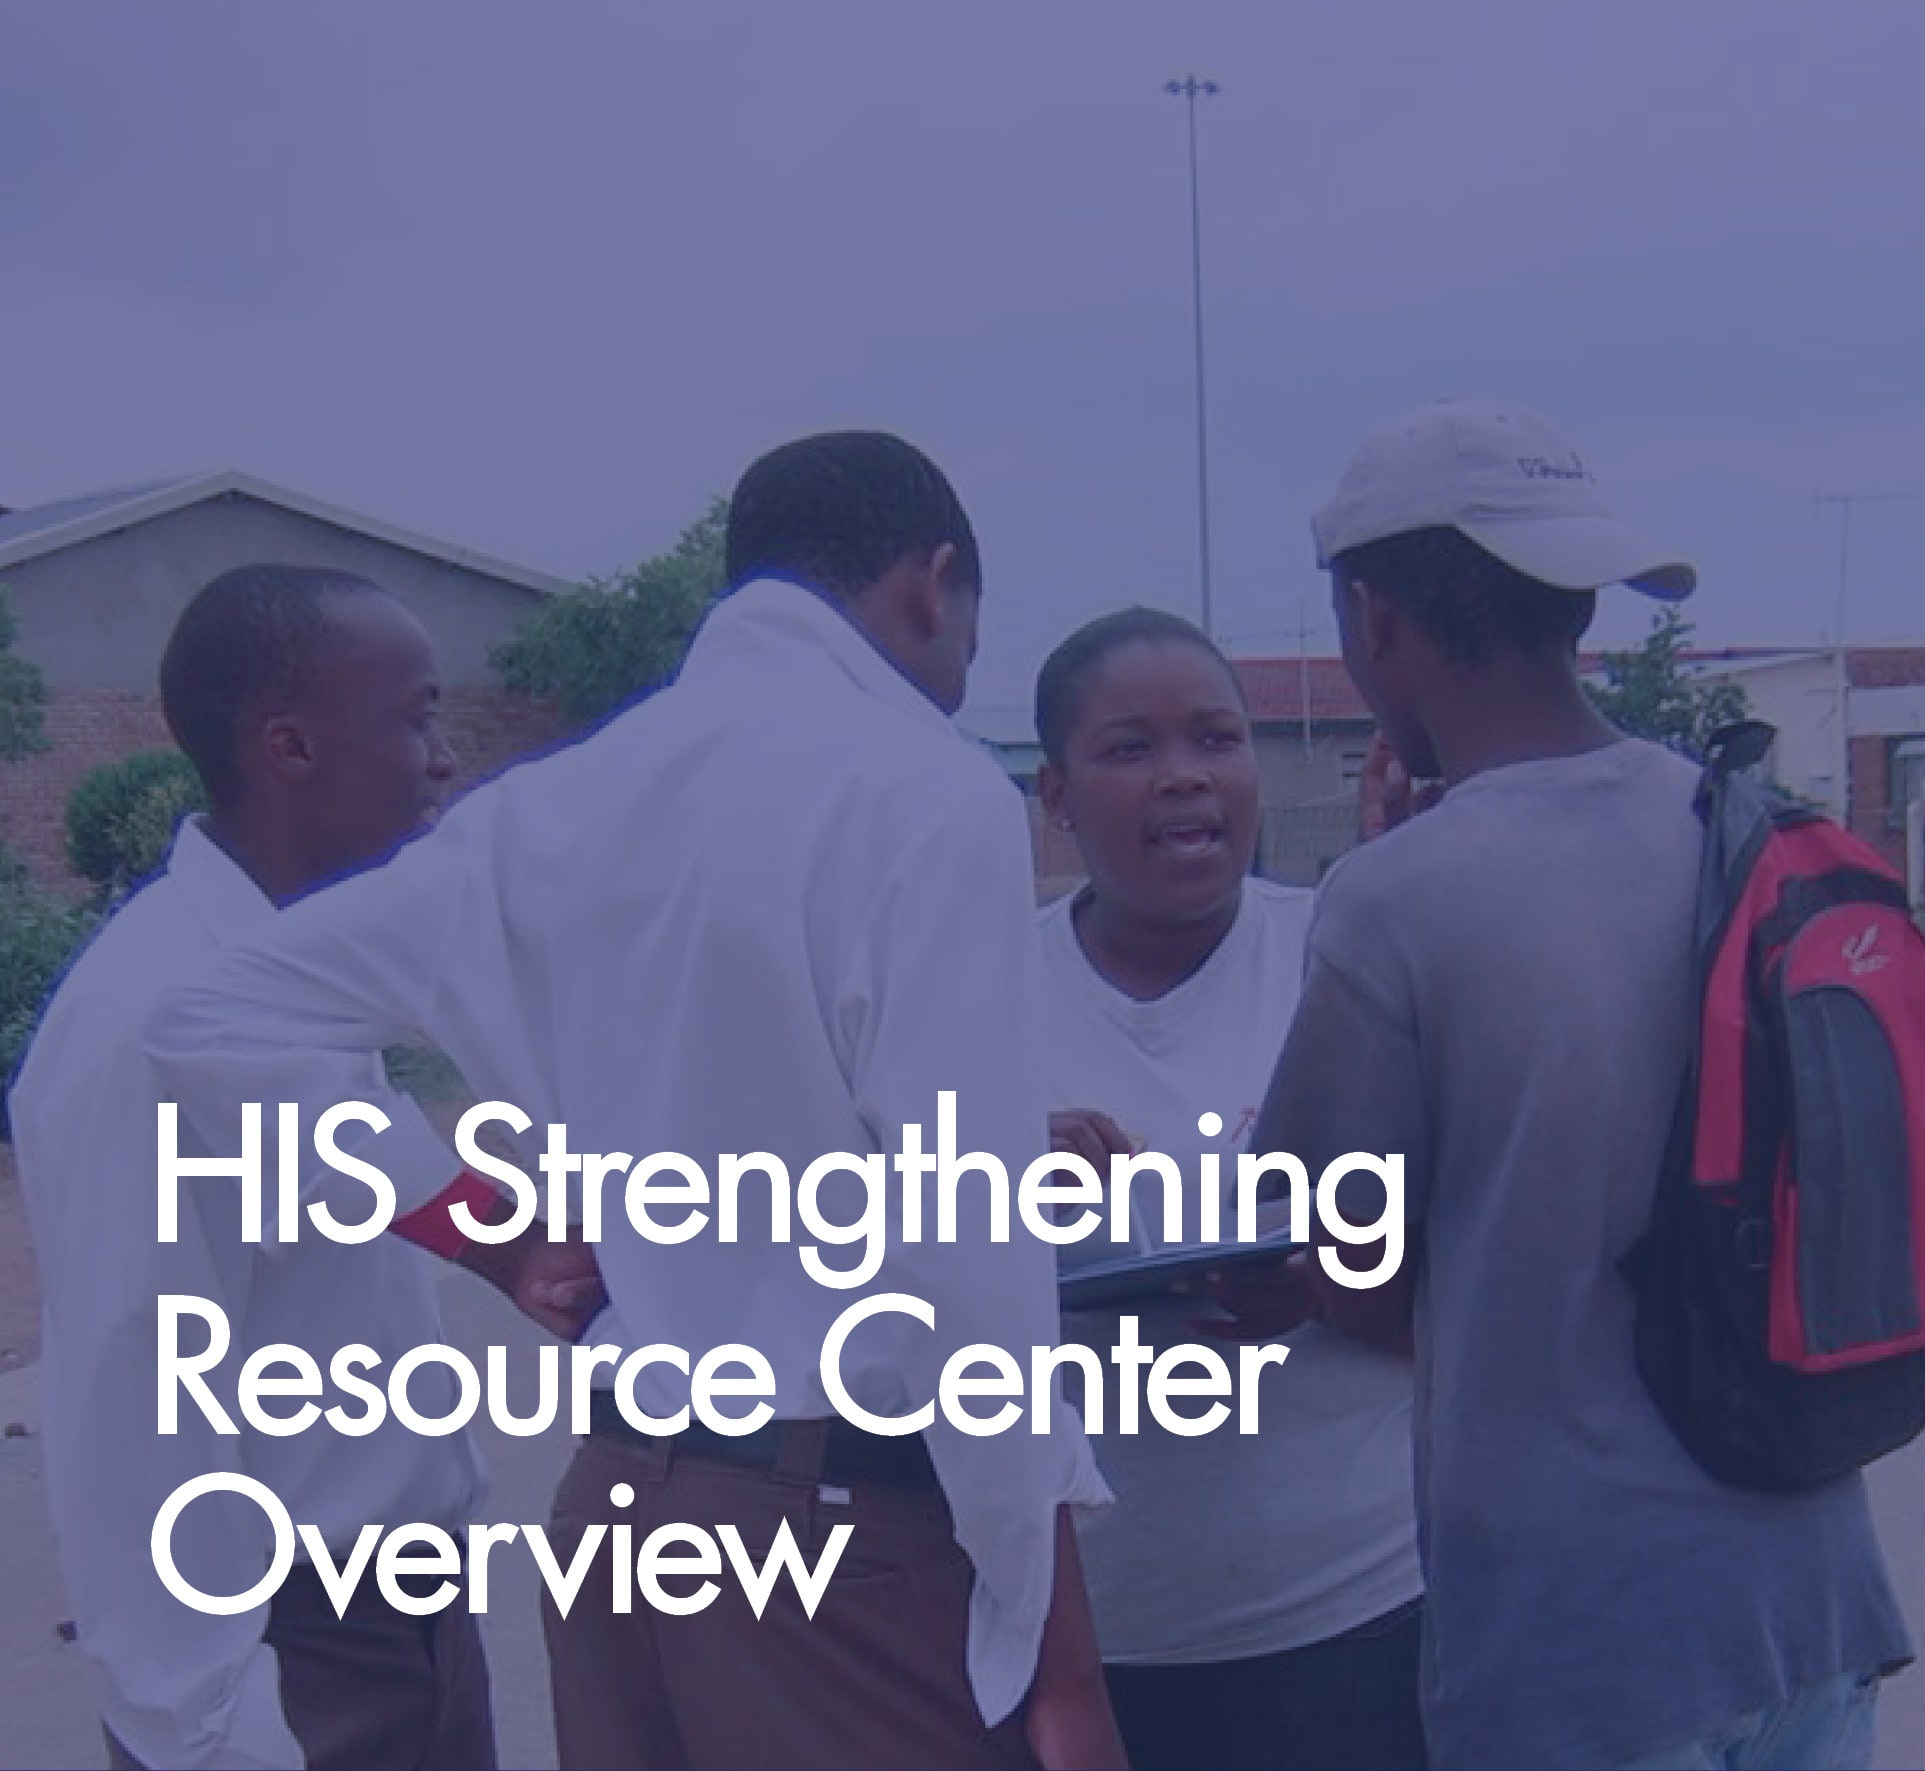 HIS Strengthening Resource Center Overview